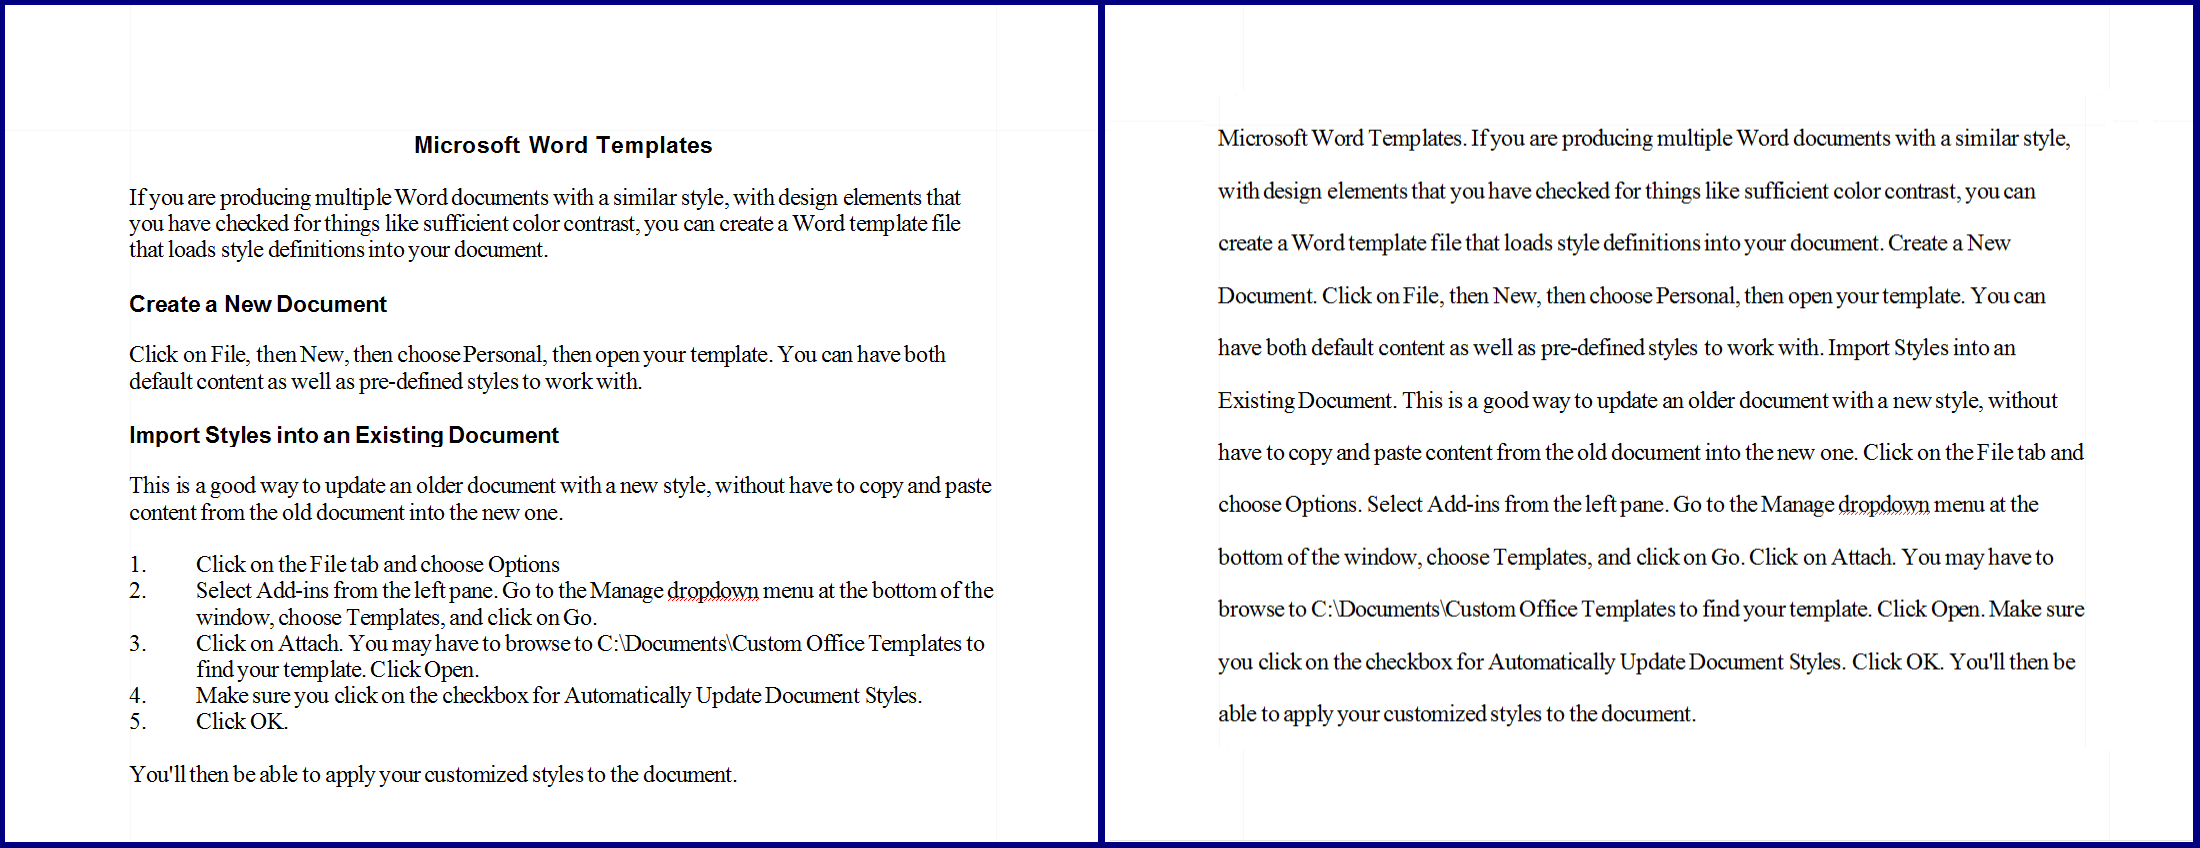 Two sample documents, one formatted and one a continuous line of text.